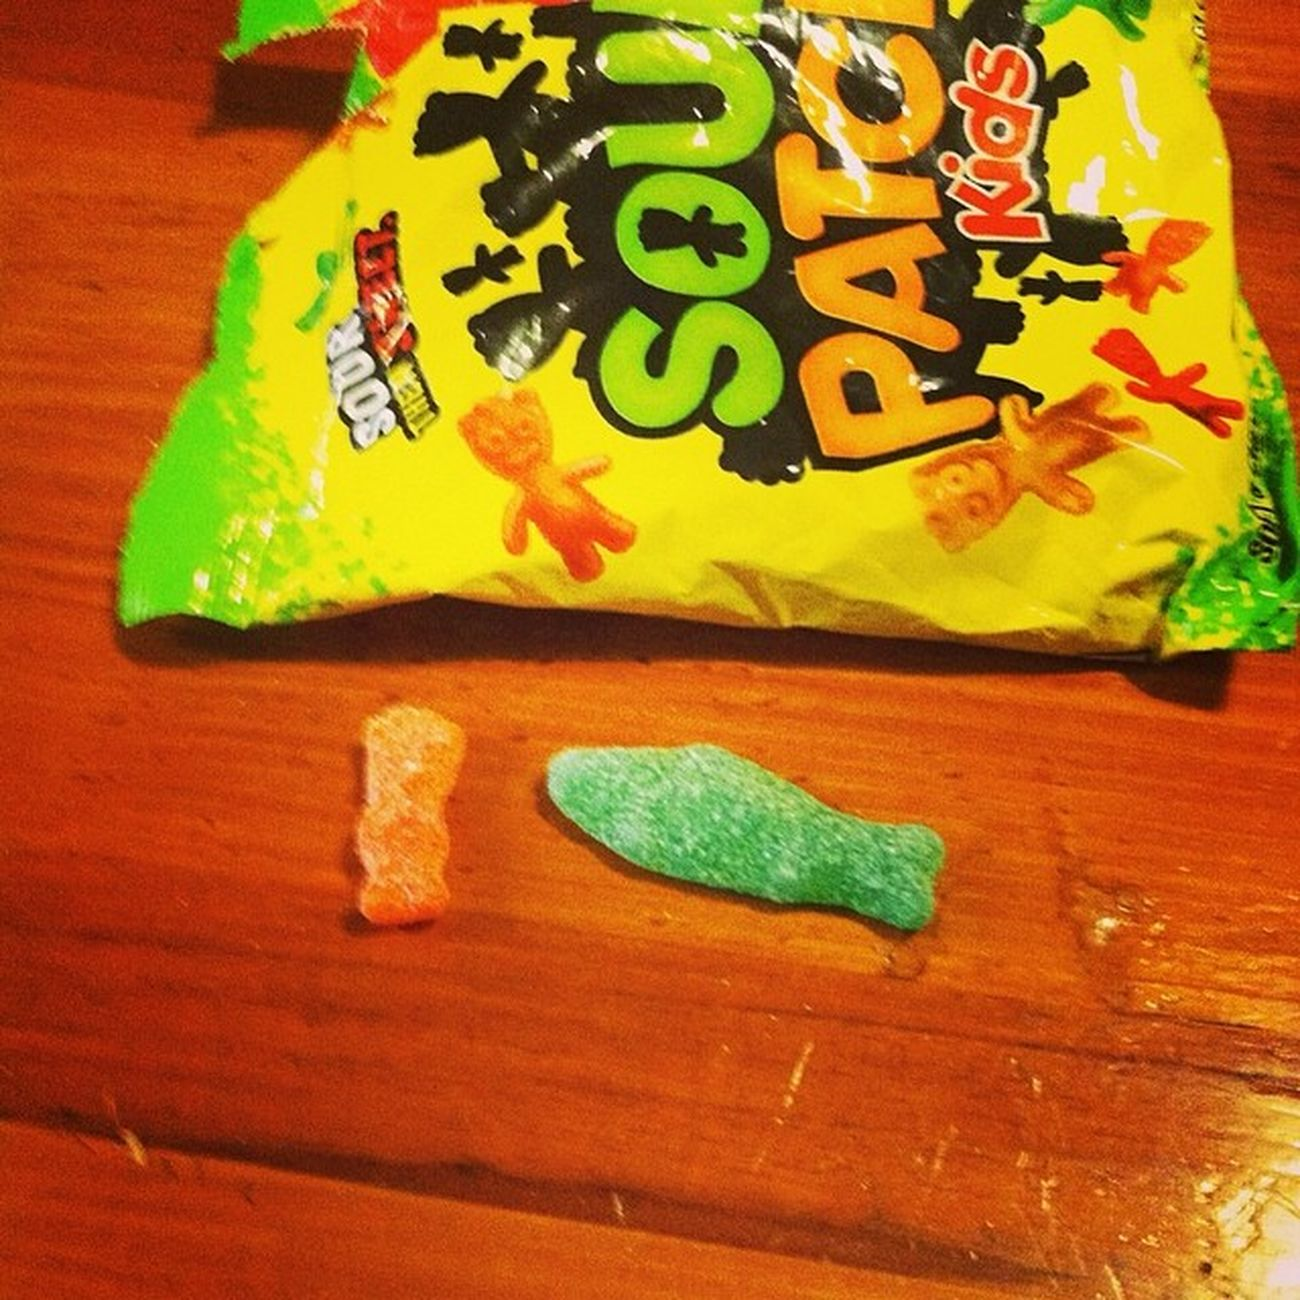 I found an outsider in my sour patch kids... Outsider Swedishfish Sourpatchkids Candy random lie